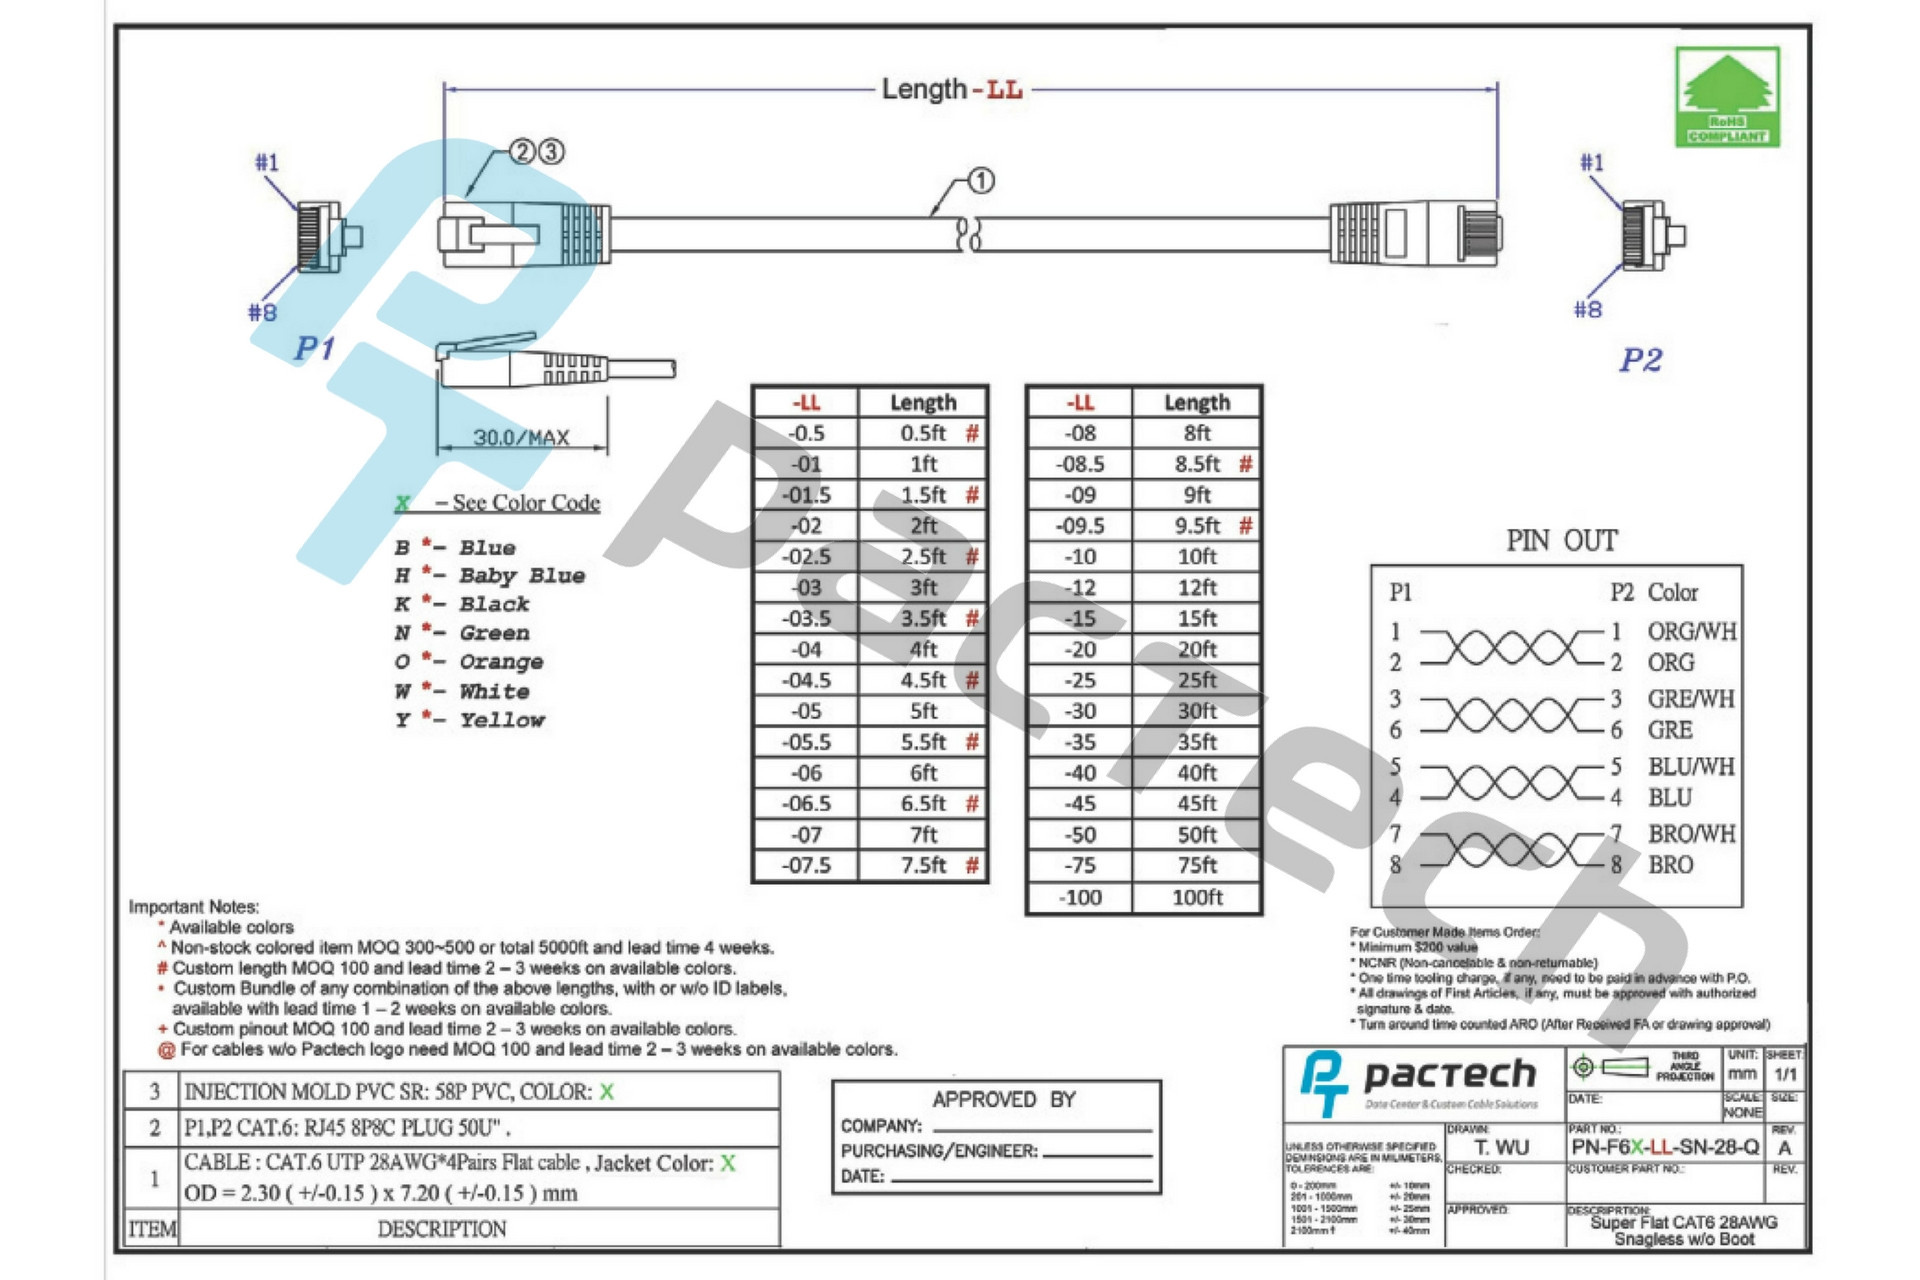 cat5 cable pinout diagram cat 6 pinout diagram wiring diagram data  cat 6 pinout diagram wiring diagram data